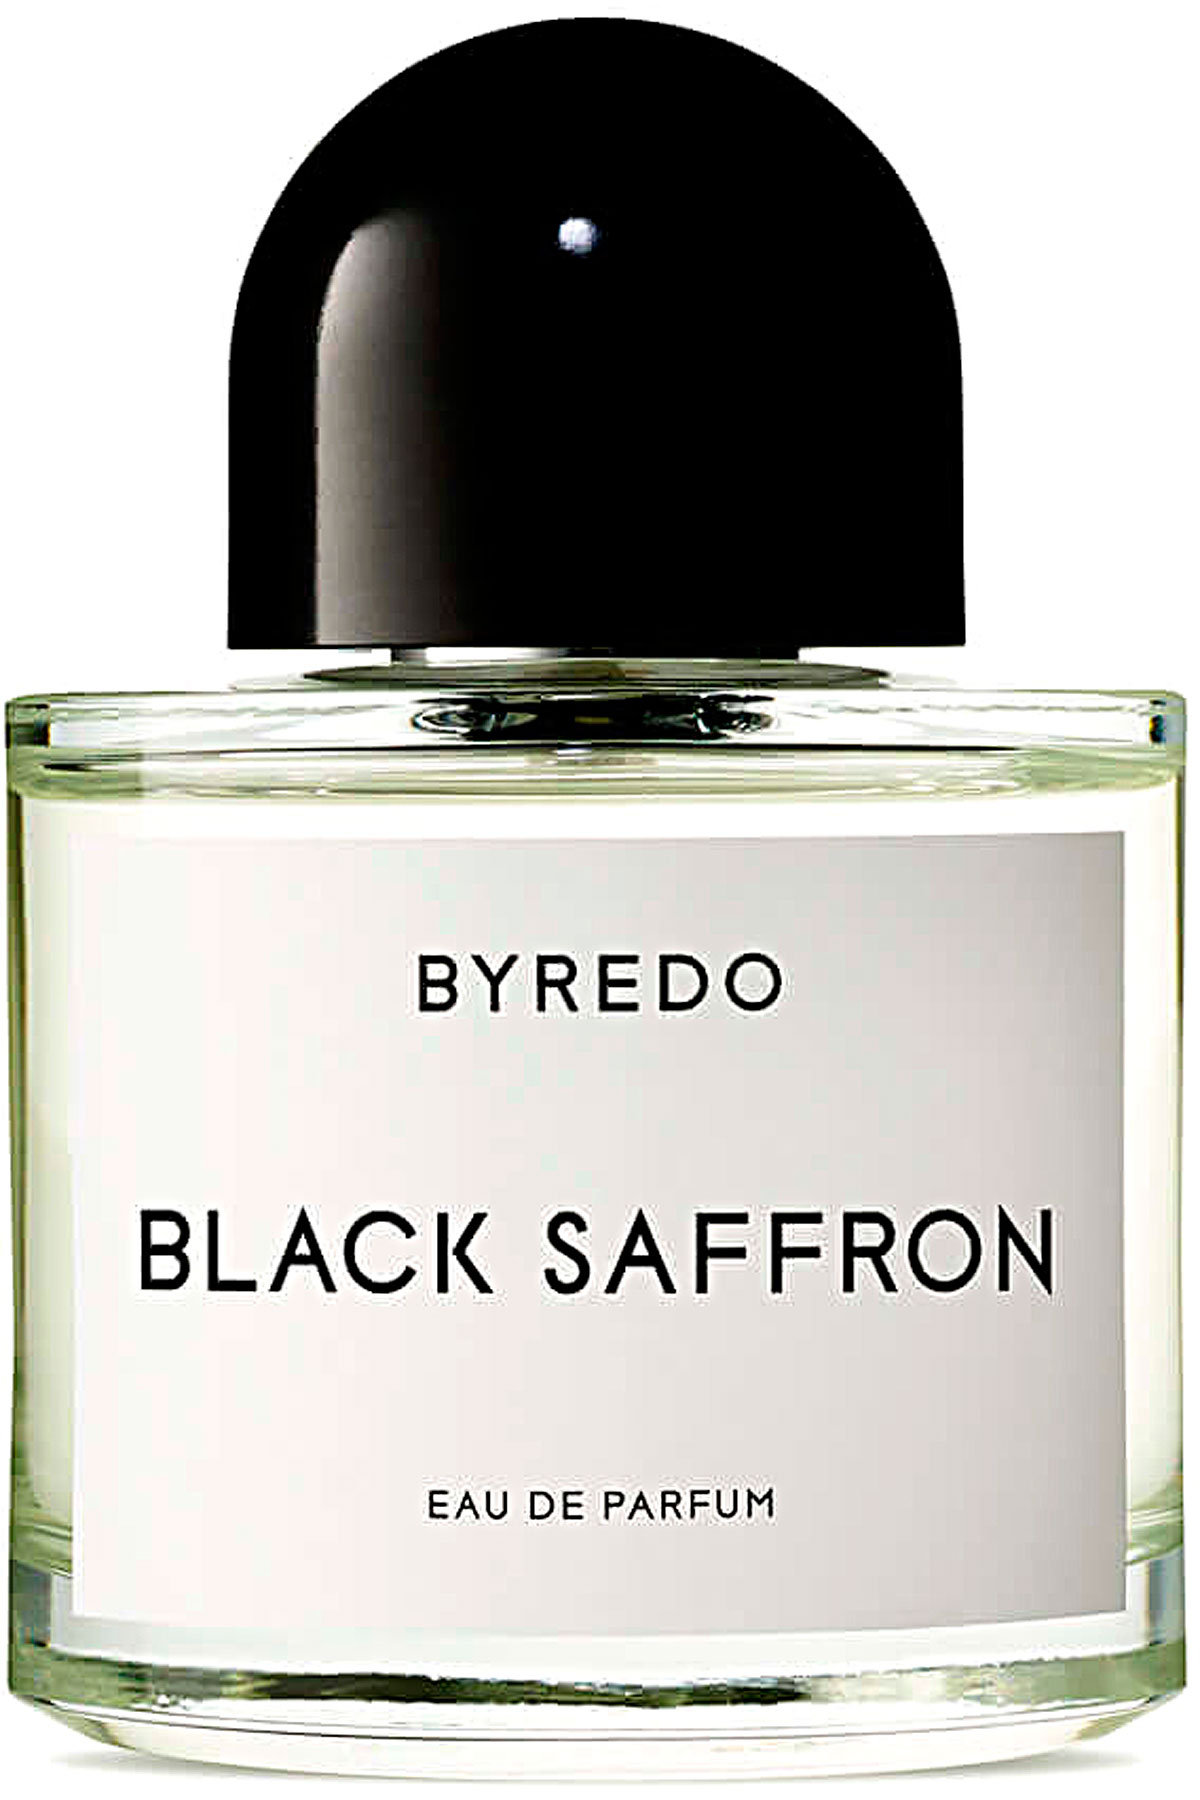 Byredo Fragrances for Men, Black Saffron - Eau De Parfum - 100 Ml, 2019, 100 ml